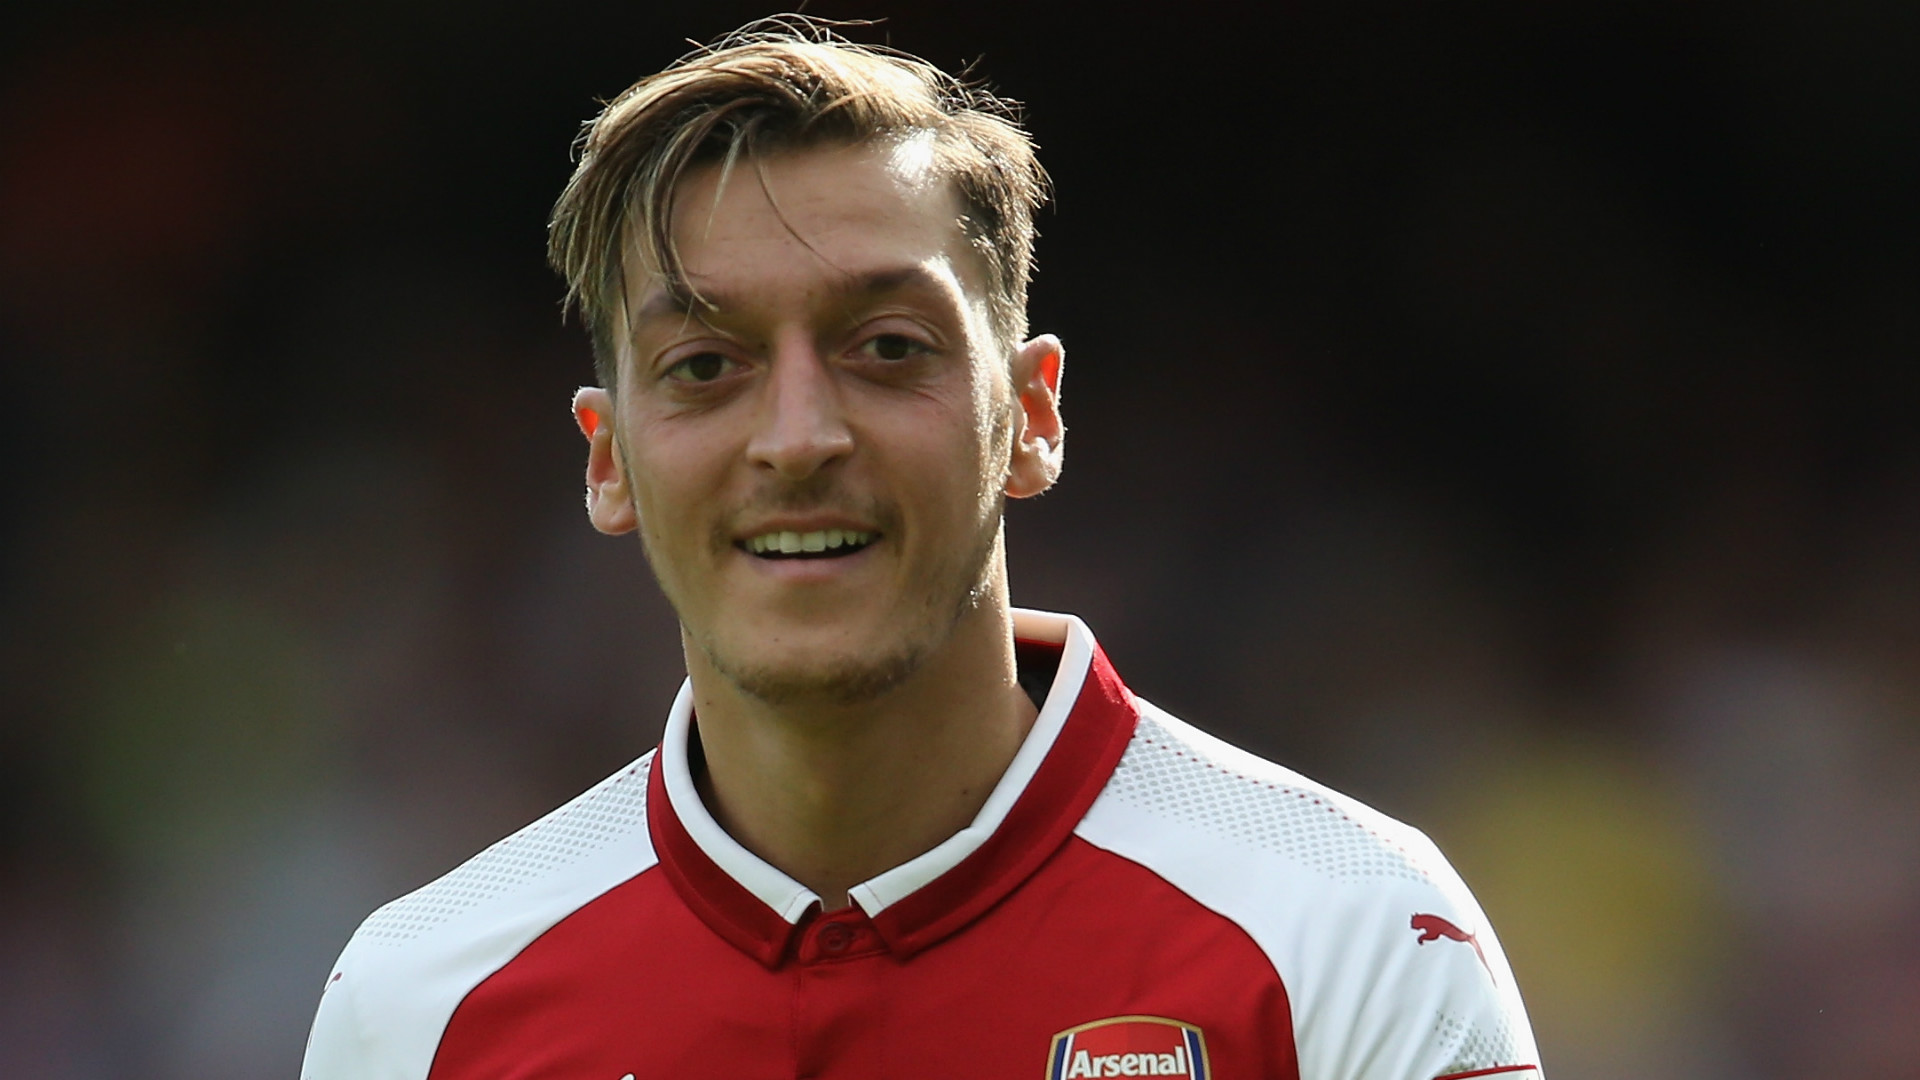 Ozil is still a Gunner and will play when fit; so let's ...